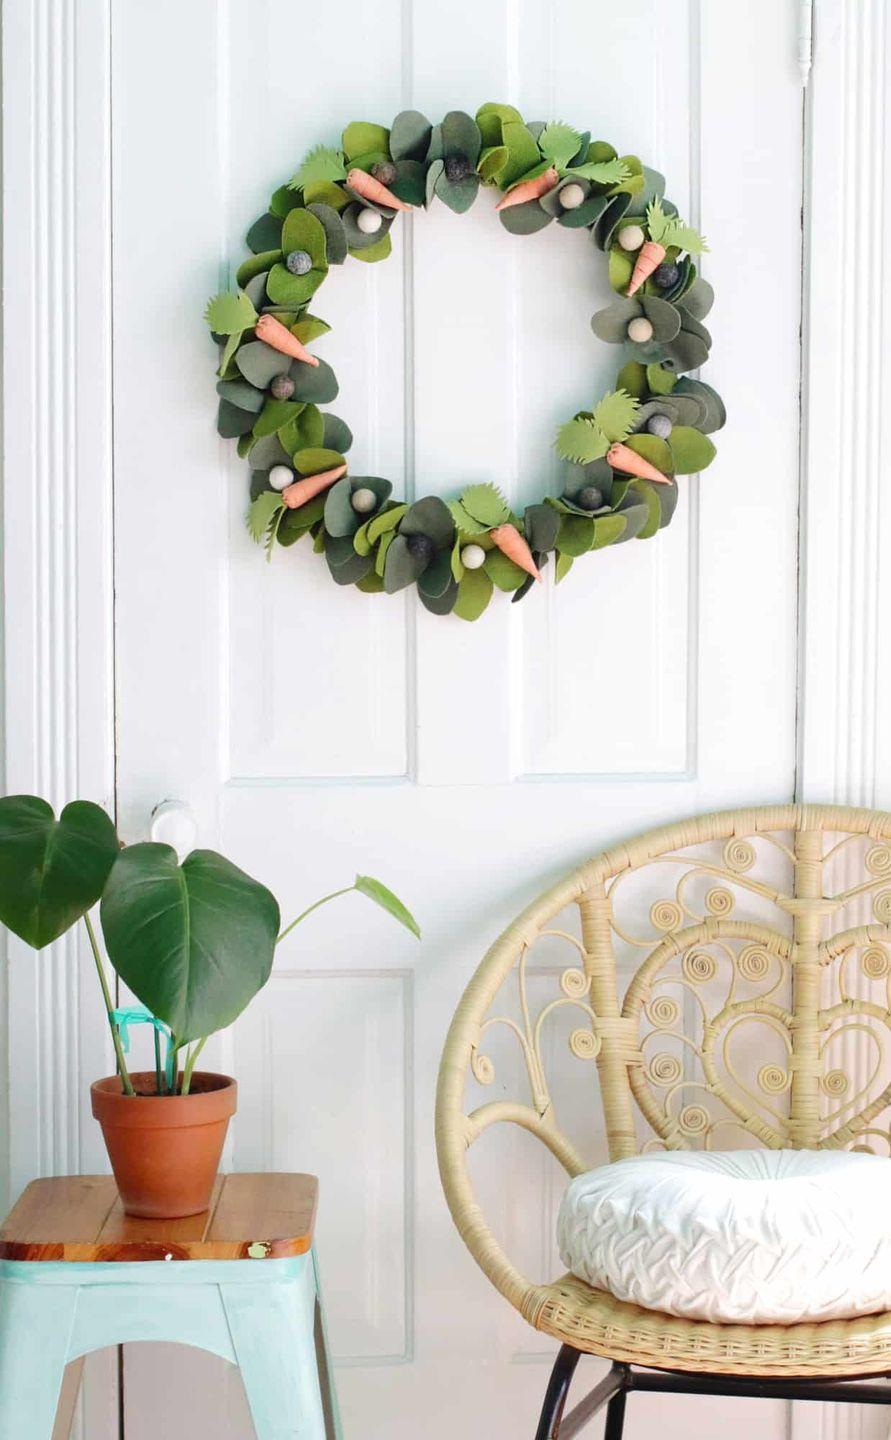 """<p>Here's a wreath any bunny would approve of! For this project, you'll use some sewing skills to craft the carrots, complemented by pretty faux leaves.</p><p><strong>Get the tutorial at <a href=""""https://abeautifulmess.com/spring-wreath-diy/"""" rel=""""nofollow noopener"""" target=""""_blank"""" data-ylk=""""slk:A Beautiful Mess"""" class=""""link rapid-noclick-resp"""">A Beautiful Mess</a>.</strong></p><p><a class=""""link rapid-noclick-resp"""" href=""""https://go.redirectingat.com?id=74968X1596630&url=https%3A%2F%2Fwww.walmart.com%2Fsearch%2F%3Fquery%3Dhot%2Bglue%2Bguns&sref=https%3A%2F%2Fwww.thepioneerwoman.com%2Fhome-lifestyle%2Fcrafts-diy%2Fg35698457%2Fdiy-easter-wreath-ideas%2F"""" rel=""""nofollow noopener"""" target=""""_blank"""" data-ylk=""""slk:SHOP HOT GLUE GUNS"""">SHOP HOT GLUE GUNS</a></p>"""